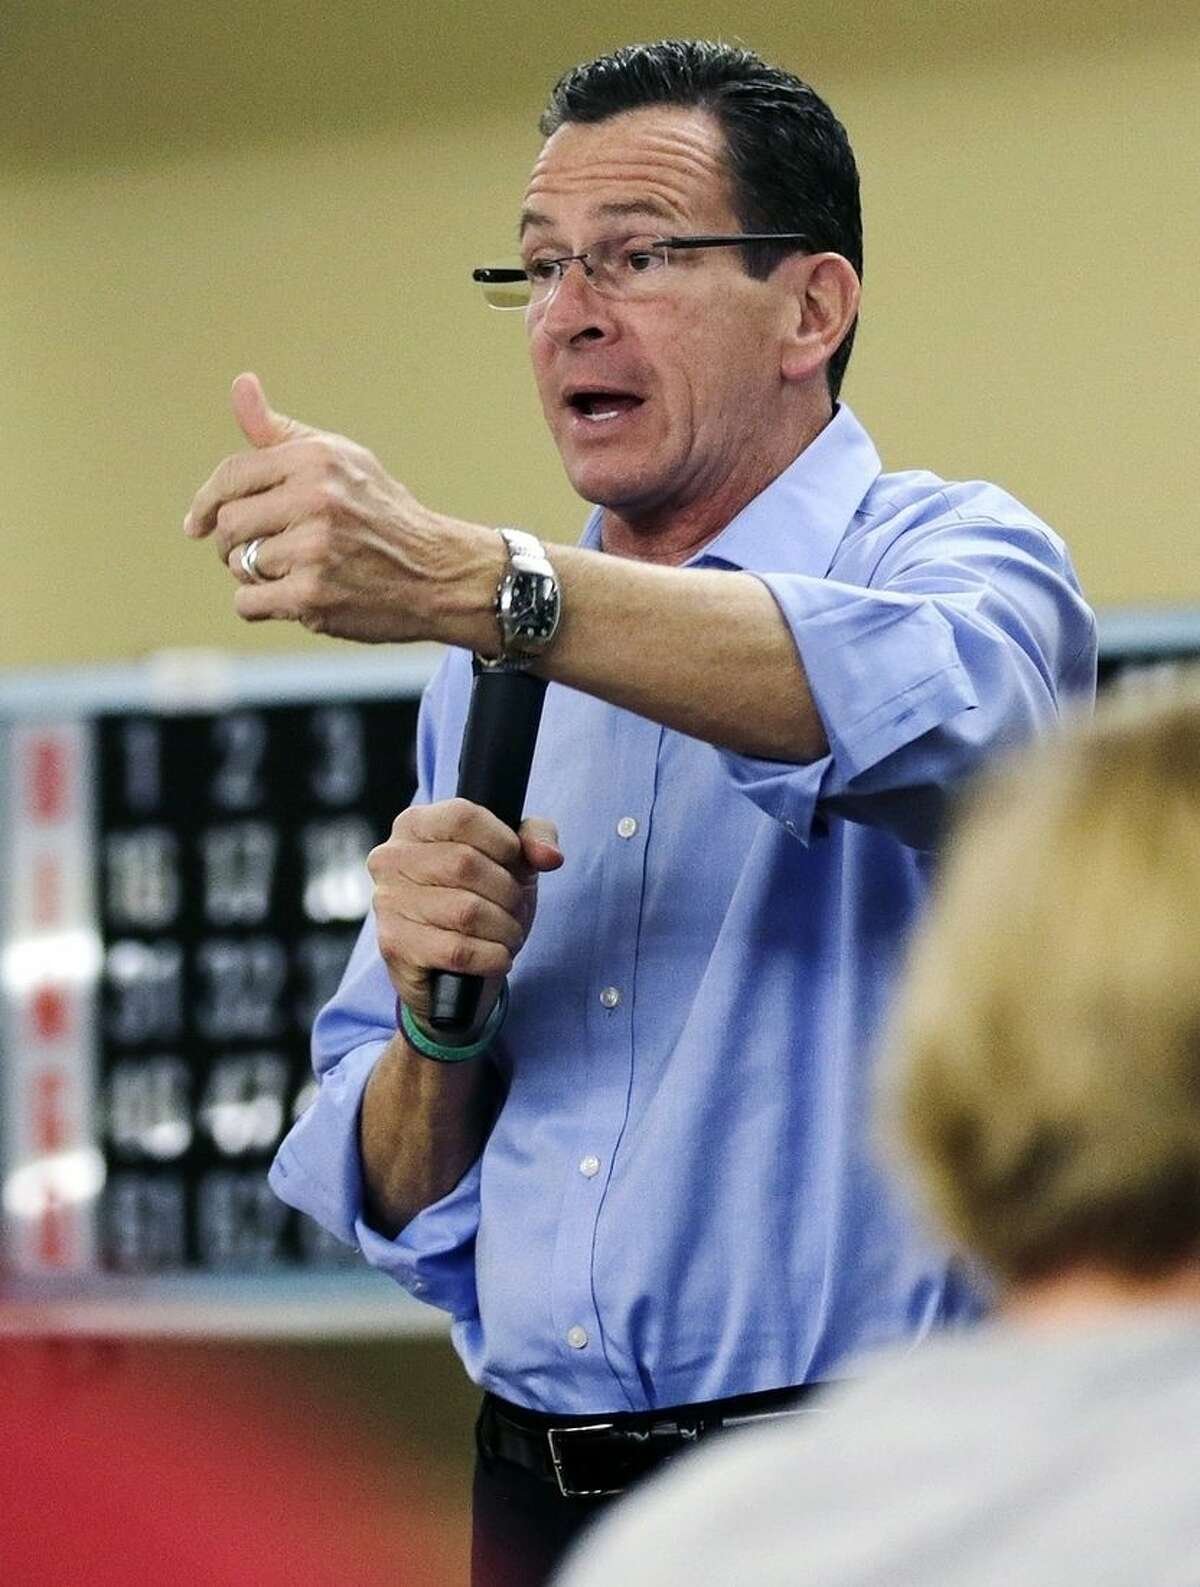 Connecticut Gov. Dannel Malloy gestures during a campaign rally at the Bella Vista assisted living community in New Haven, Conn., Monday, Nov. 3, 2014. Malloy faces Republican candidate for governor Tom Foley in Tuesday's general election. (AP Photo/Charles Krupa)